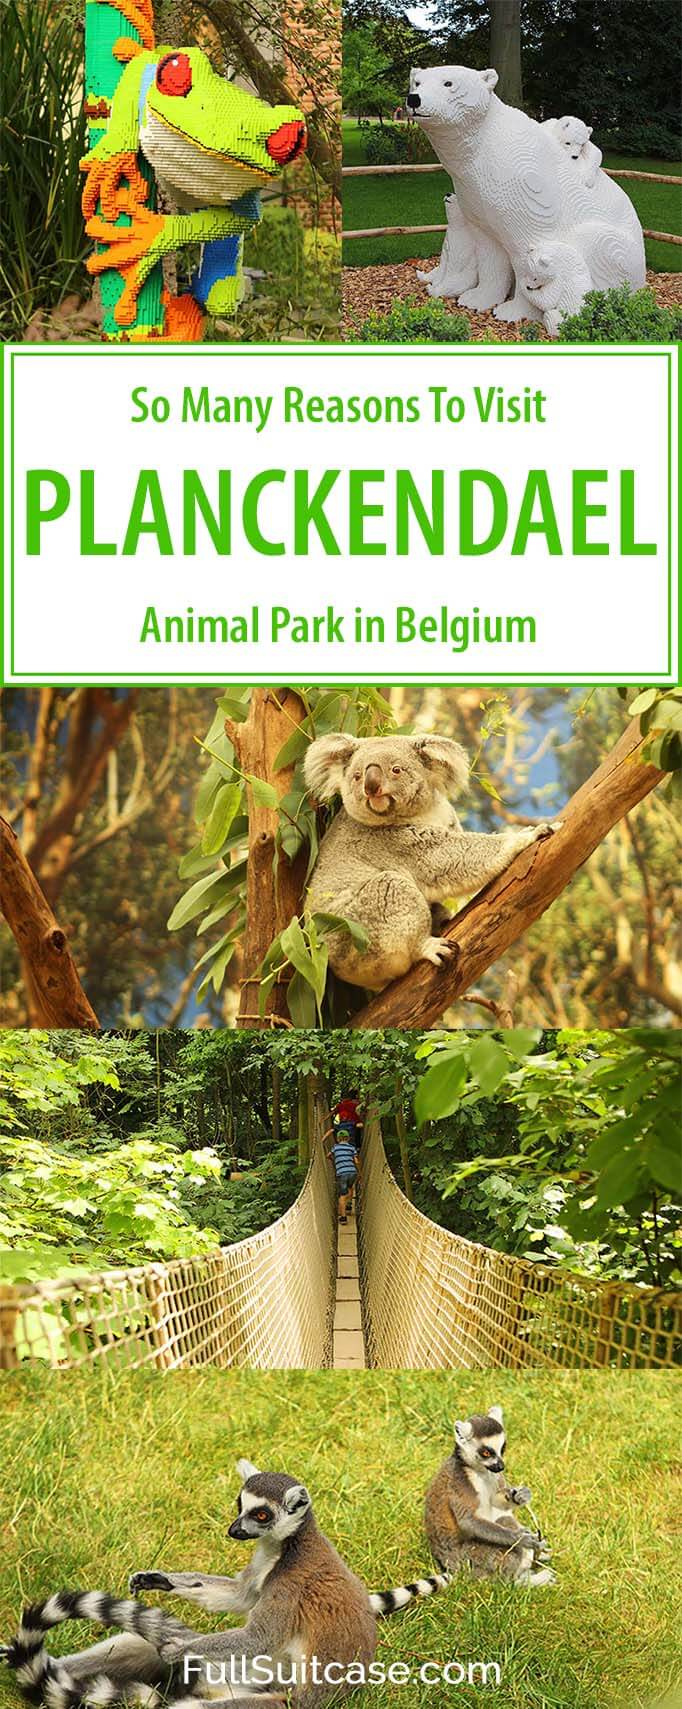 There are so many reasons to visit Planckendael animal park in Belgium. Find out!